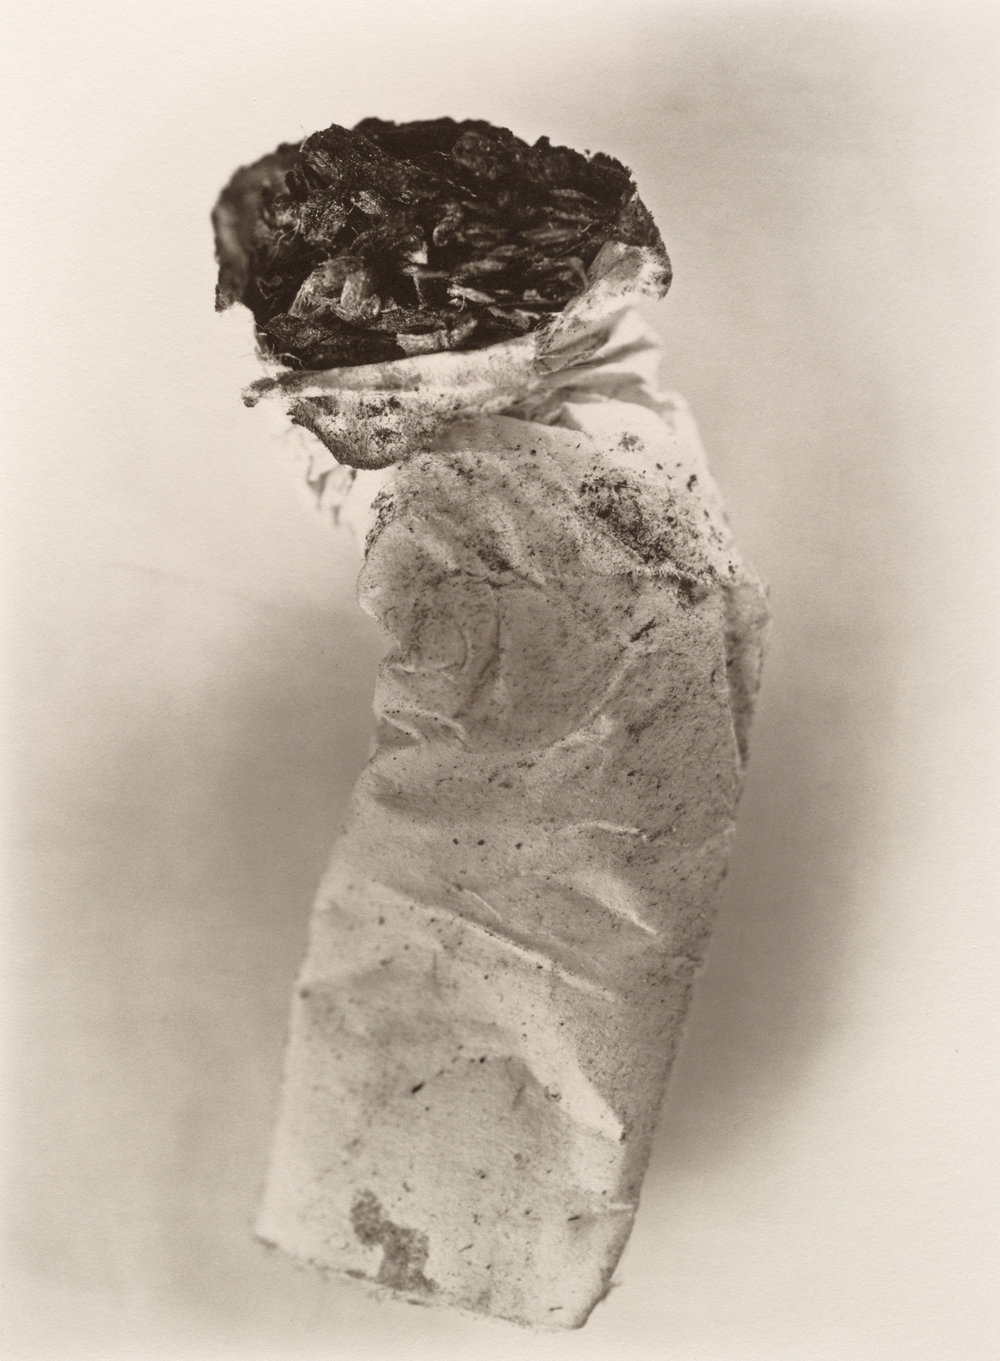 Cigarette No. 8 , New York, 1972 Platinum-palladium print © The Irving Penn Foundation